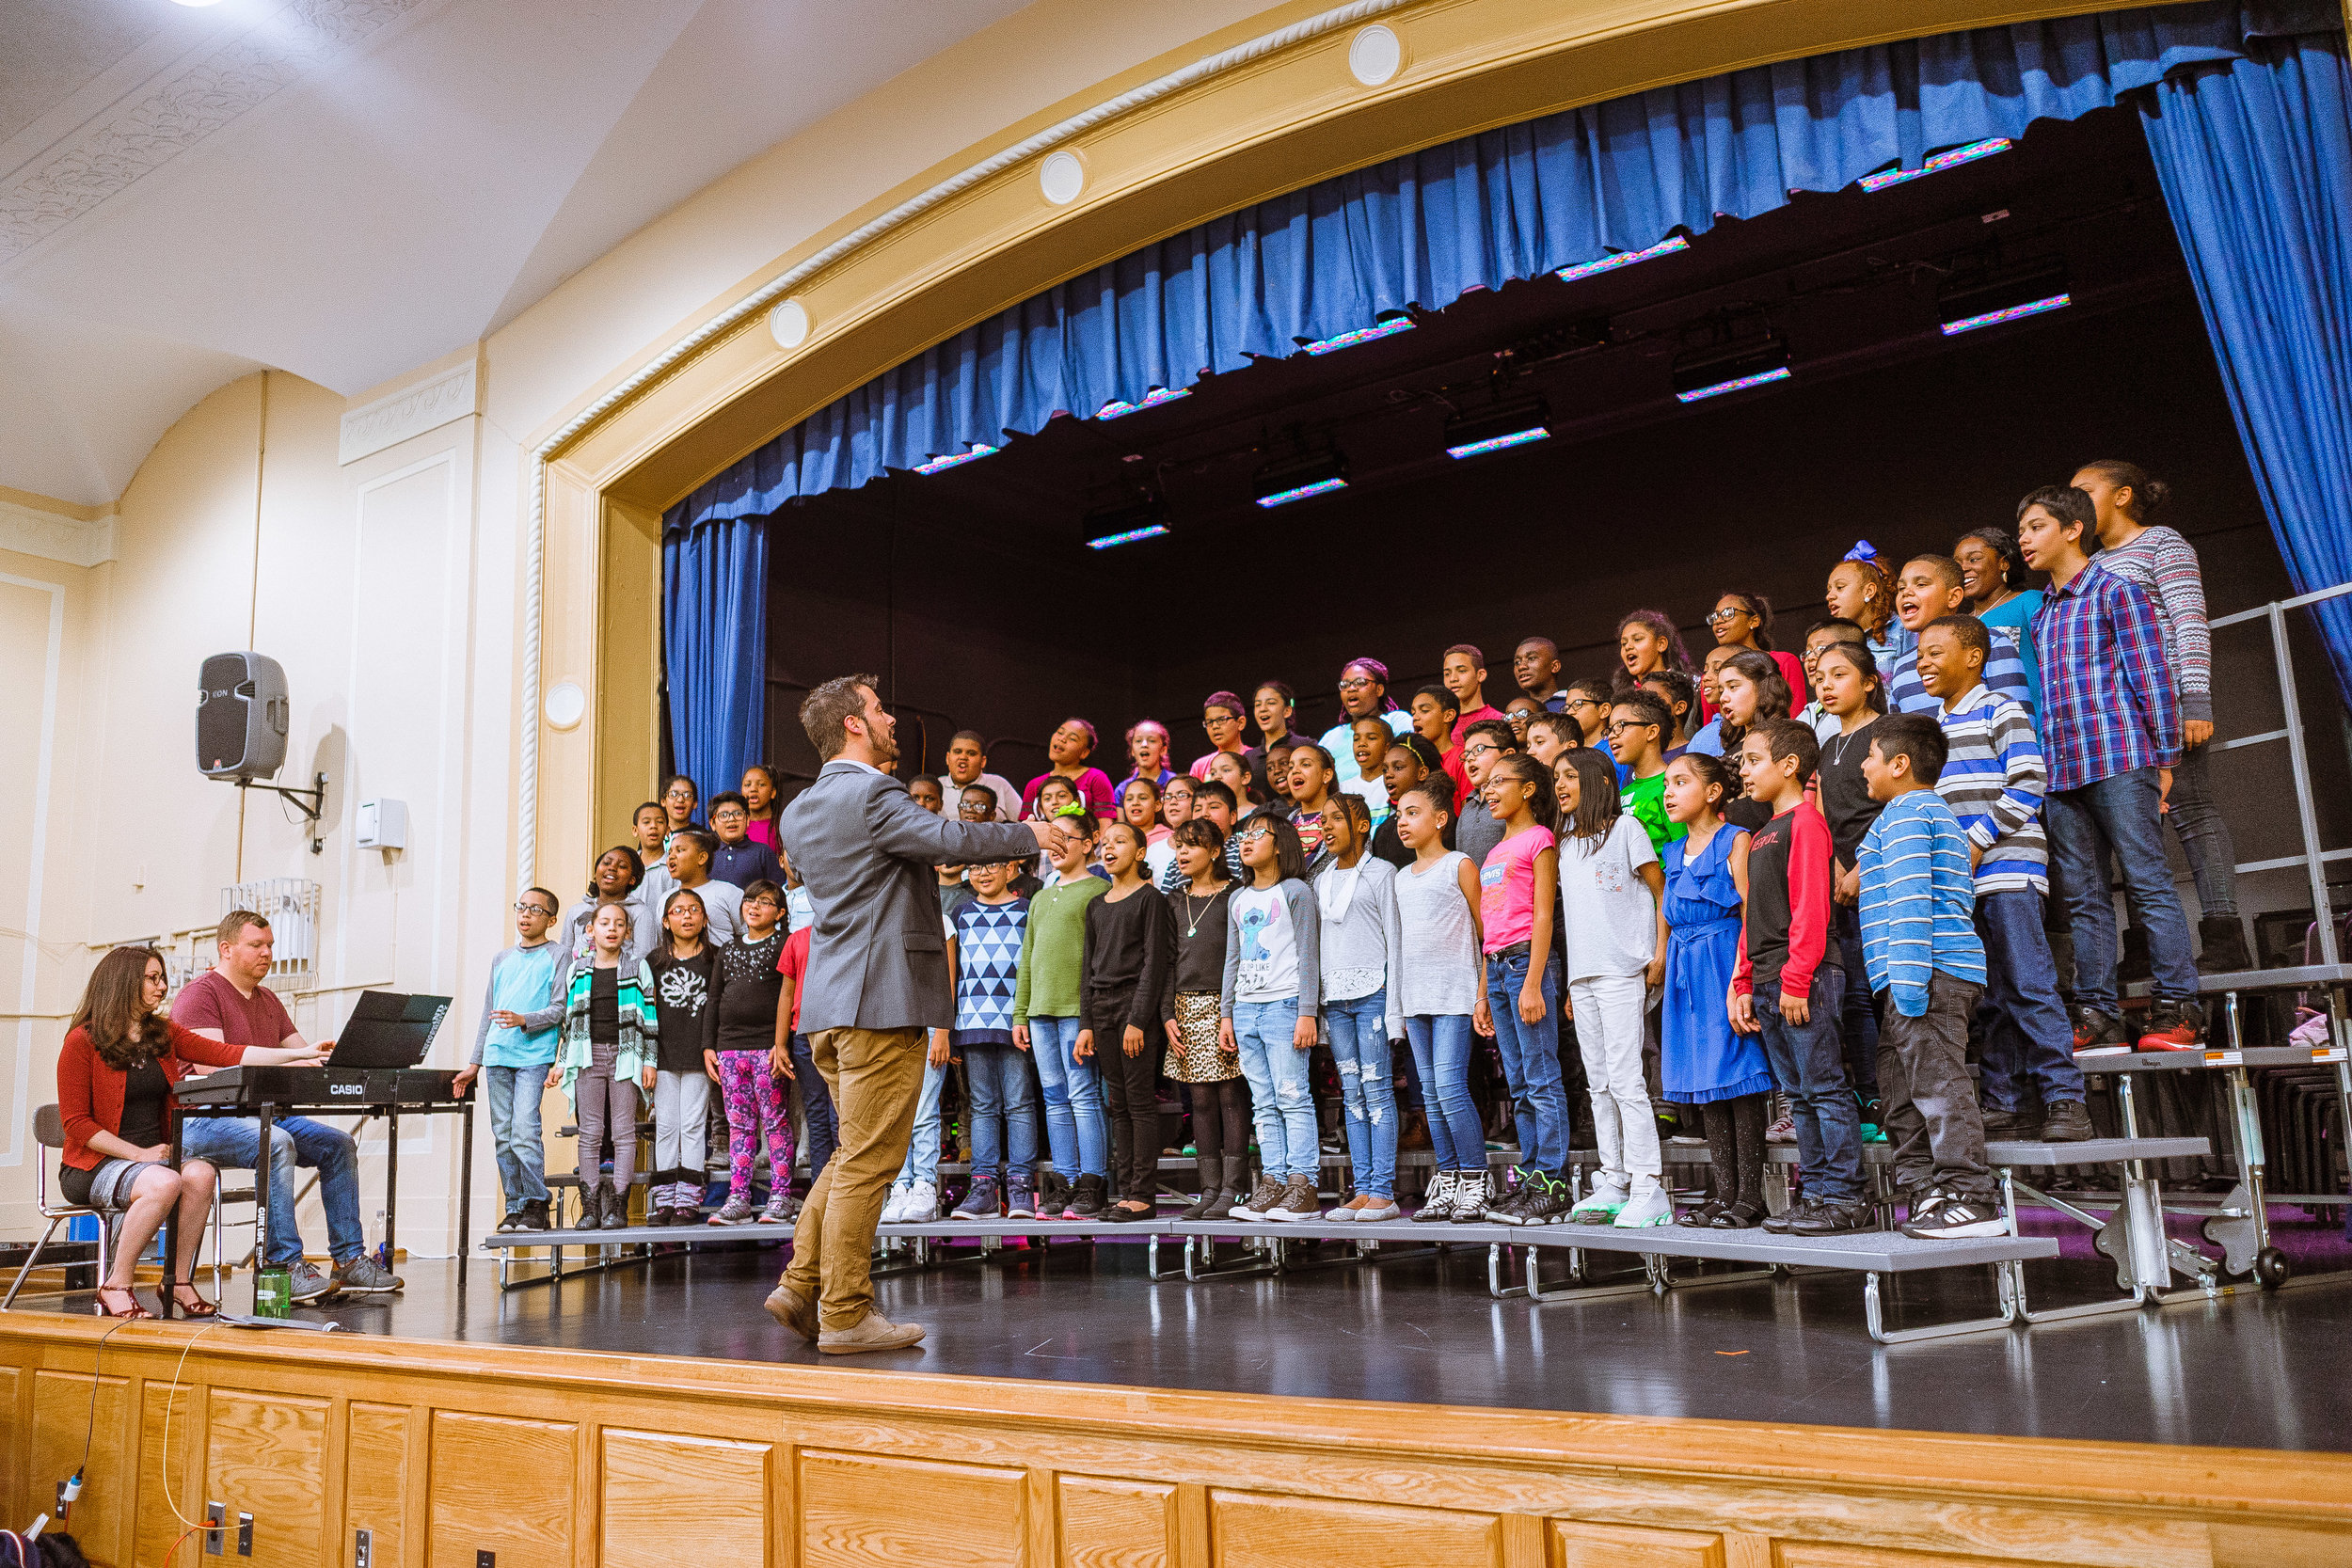 The P.S. 91x Select Choir performing in the school's auditorium.